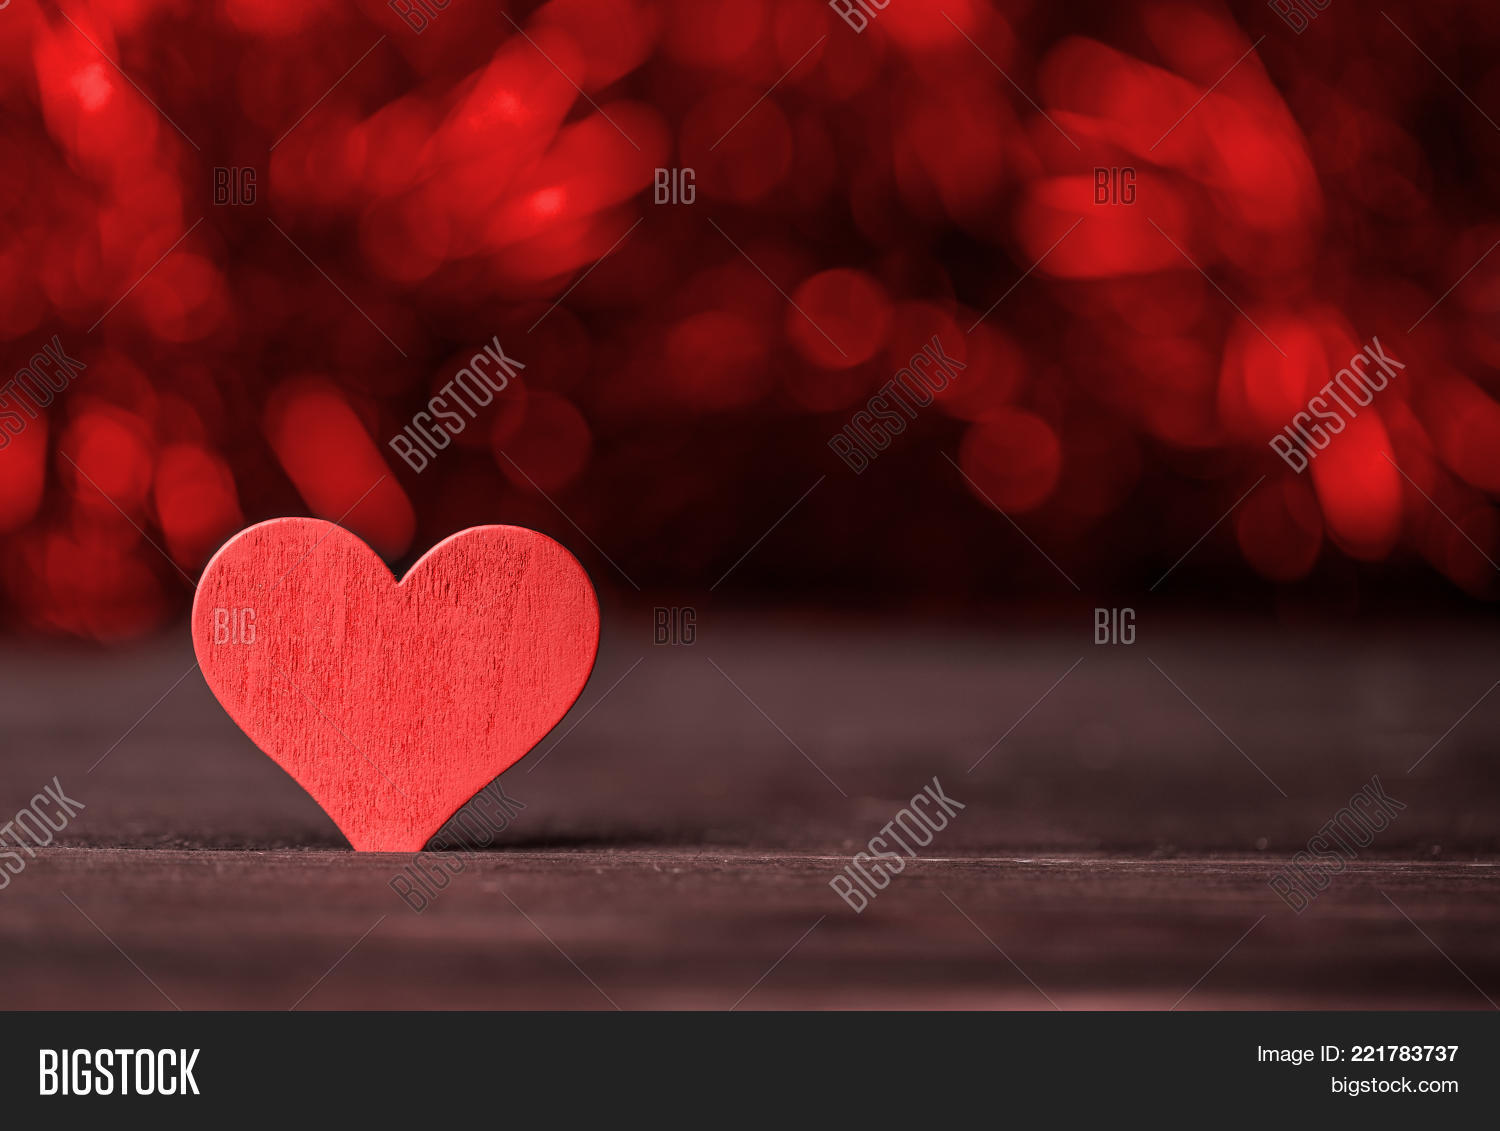 abstract,and,anniversary,background,beautiful,bokeh,card,celebration,concept,copy,day,decor,decoration,design,february,gift,greeting,hands,happy,heart,holding,holiday,love,paper,post,postcard,print,red,romance,romantic,rustic,shape,sign,space,symbol,table,texture,top,valentine,vintage,wall,wedding,wood,wooden